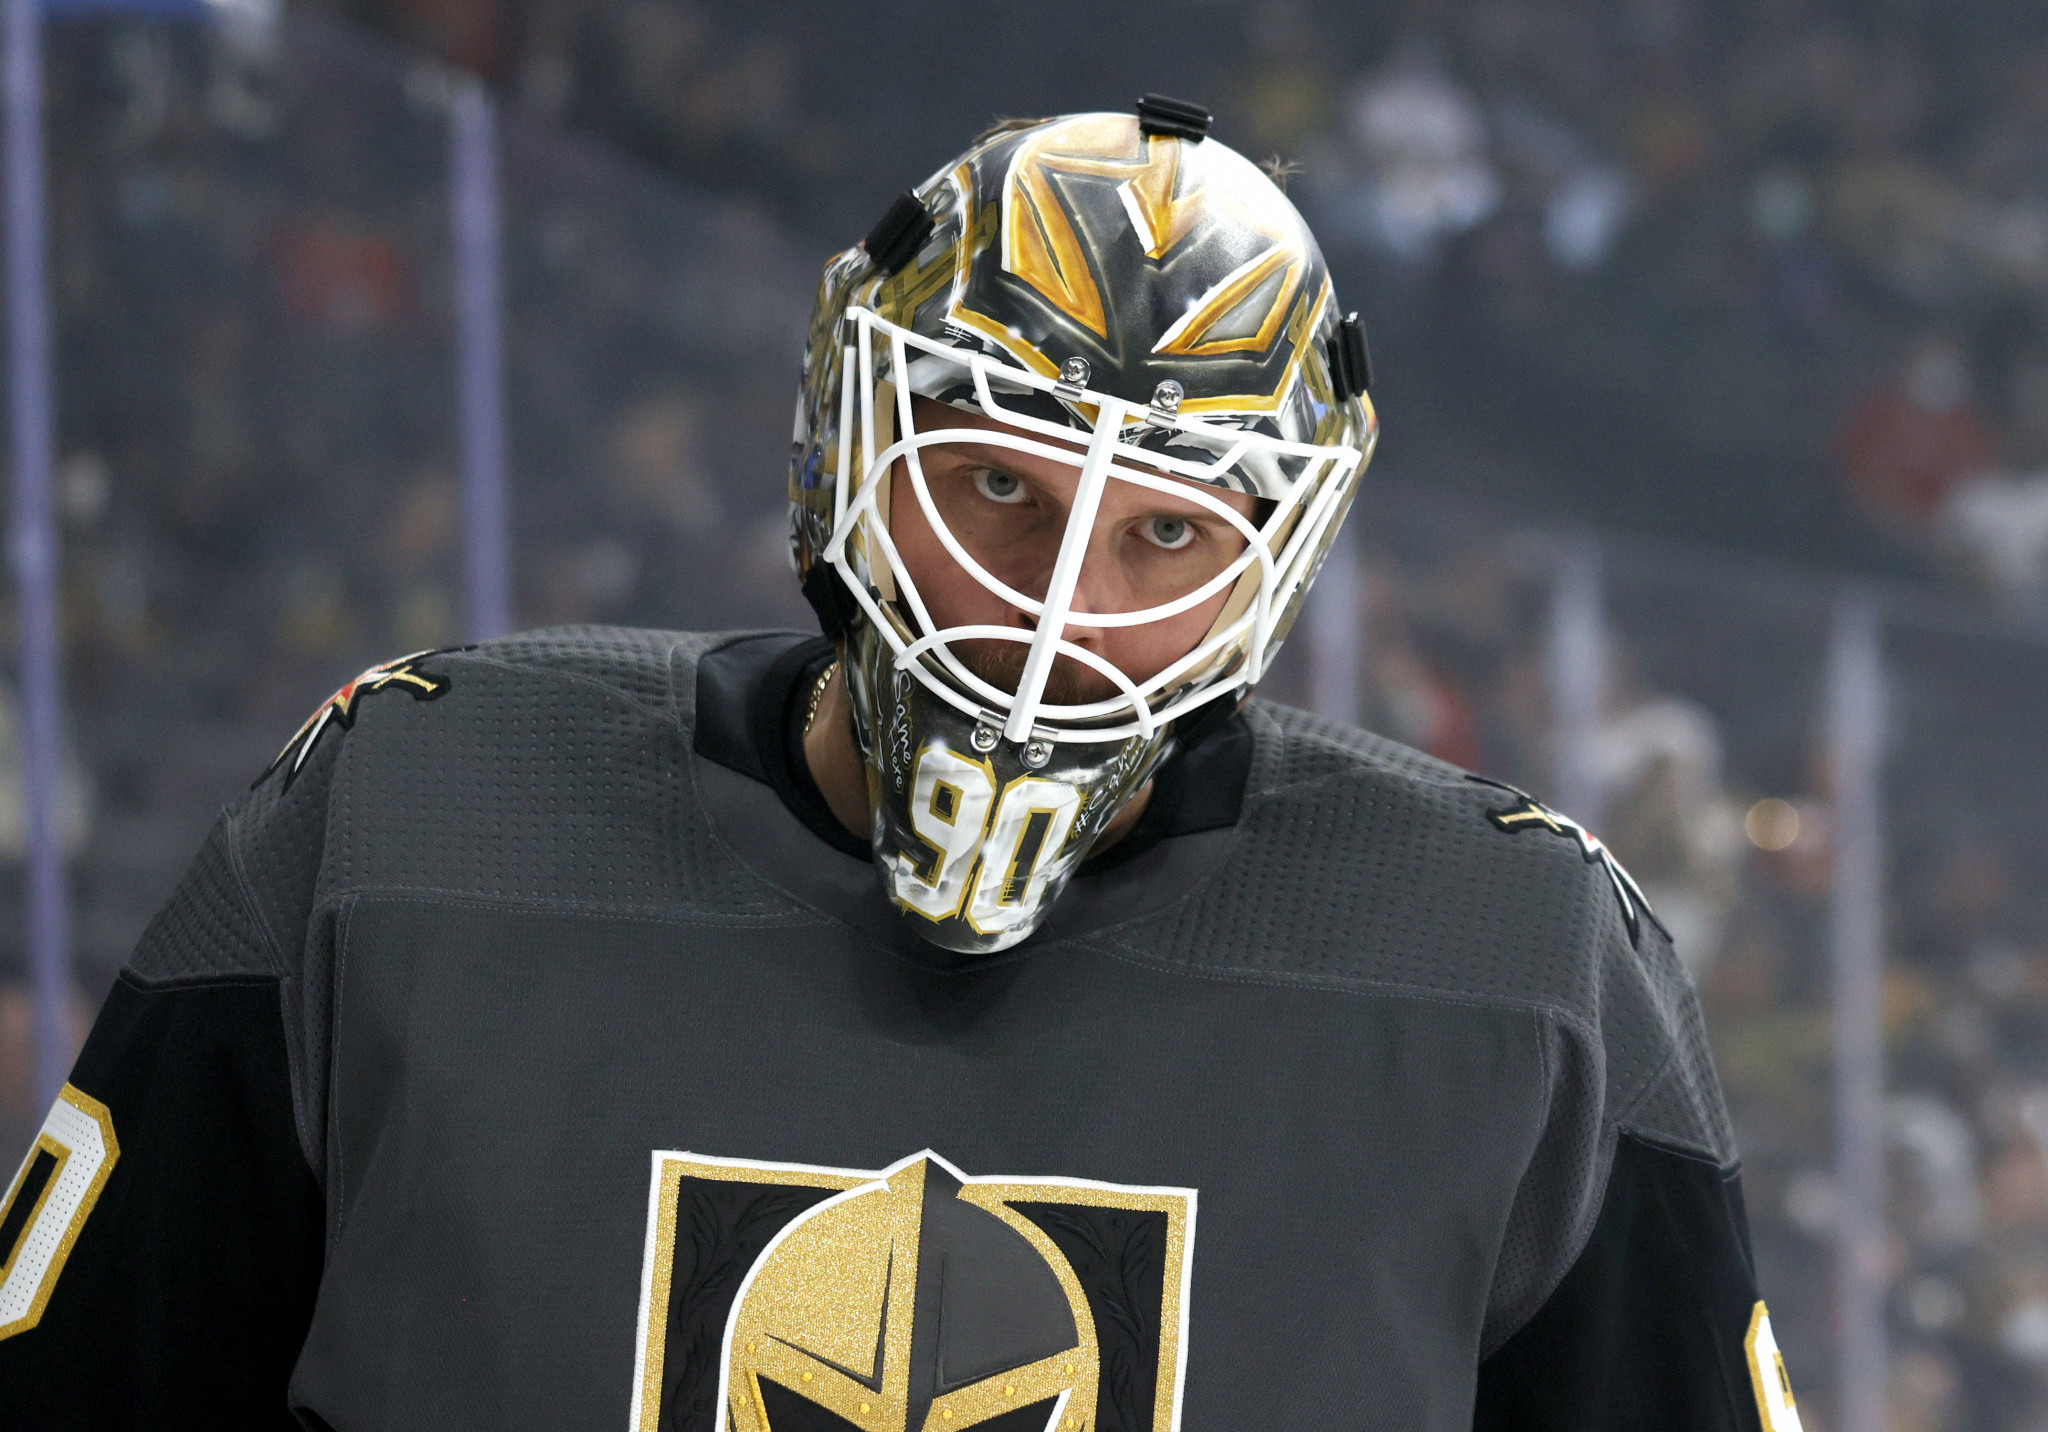 Lehner encouraged by meeting with NHL after accusing teams of medical malpractice